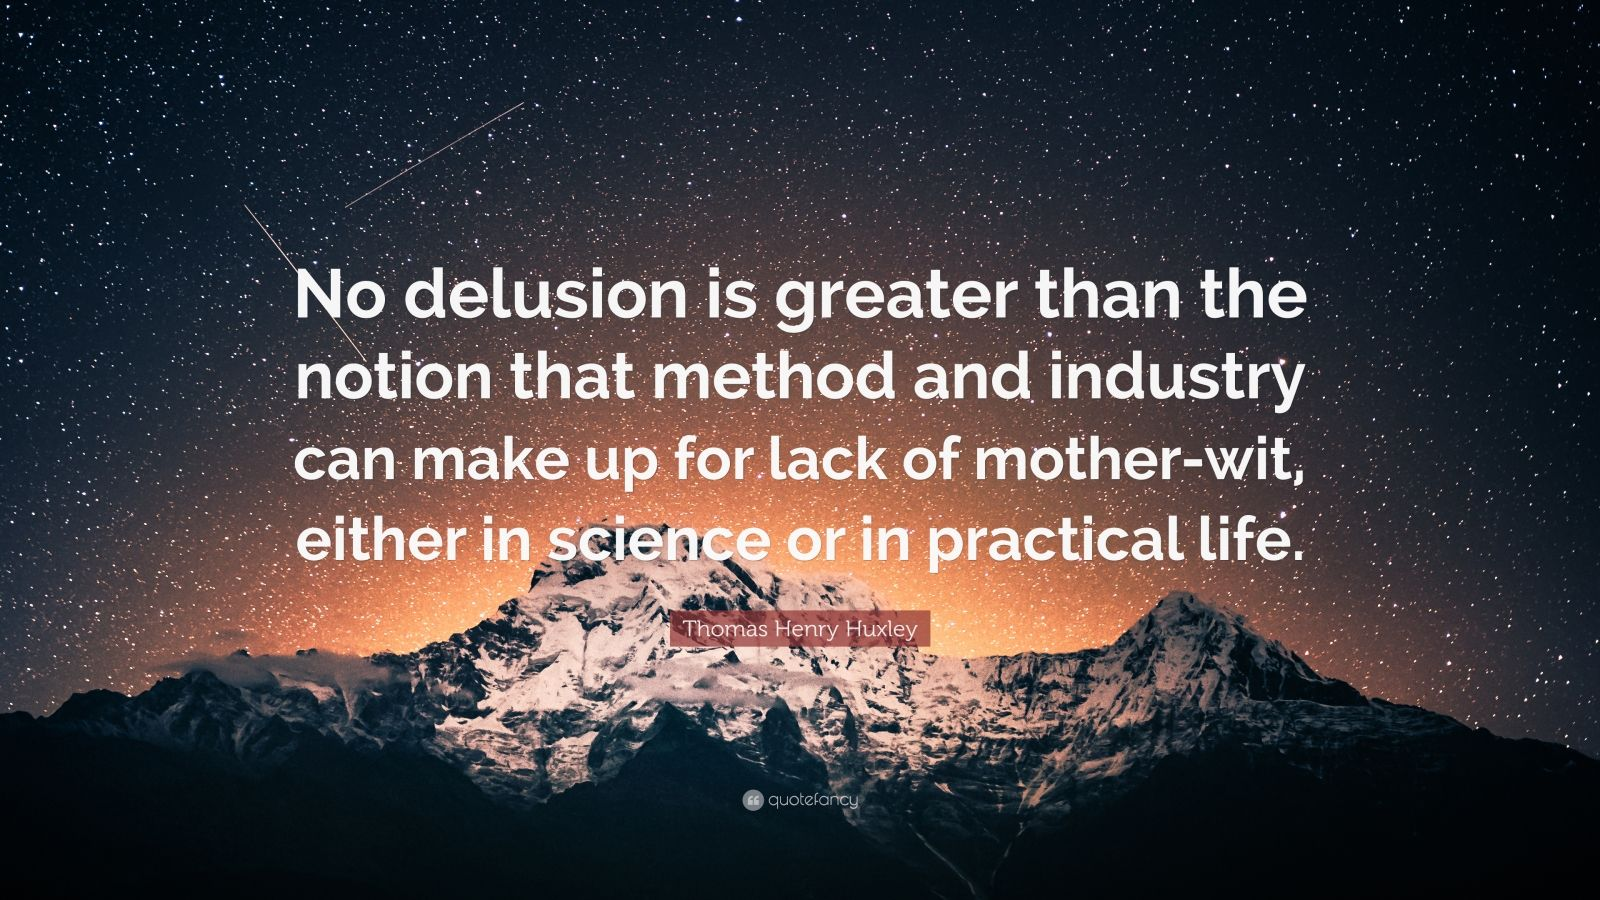 """Thomas Henry Huxley Quote: """"No delusion is greater than the notion that method and industry can make up for lack of mother-wit, either in science or in practical life."""""""